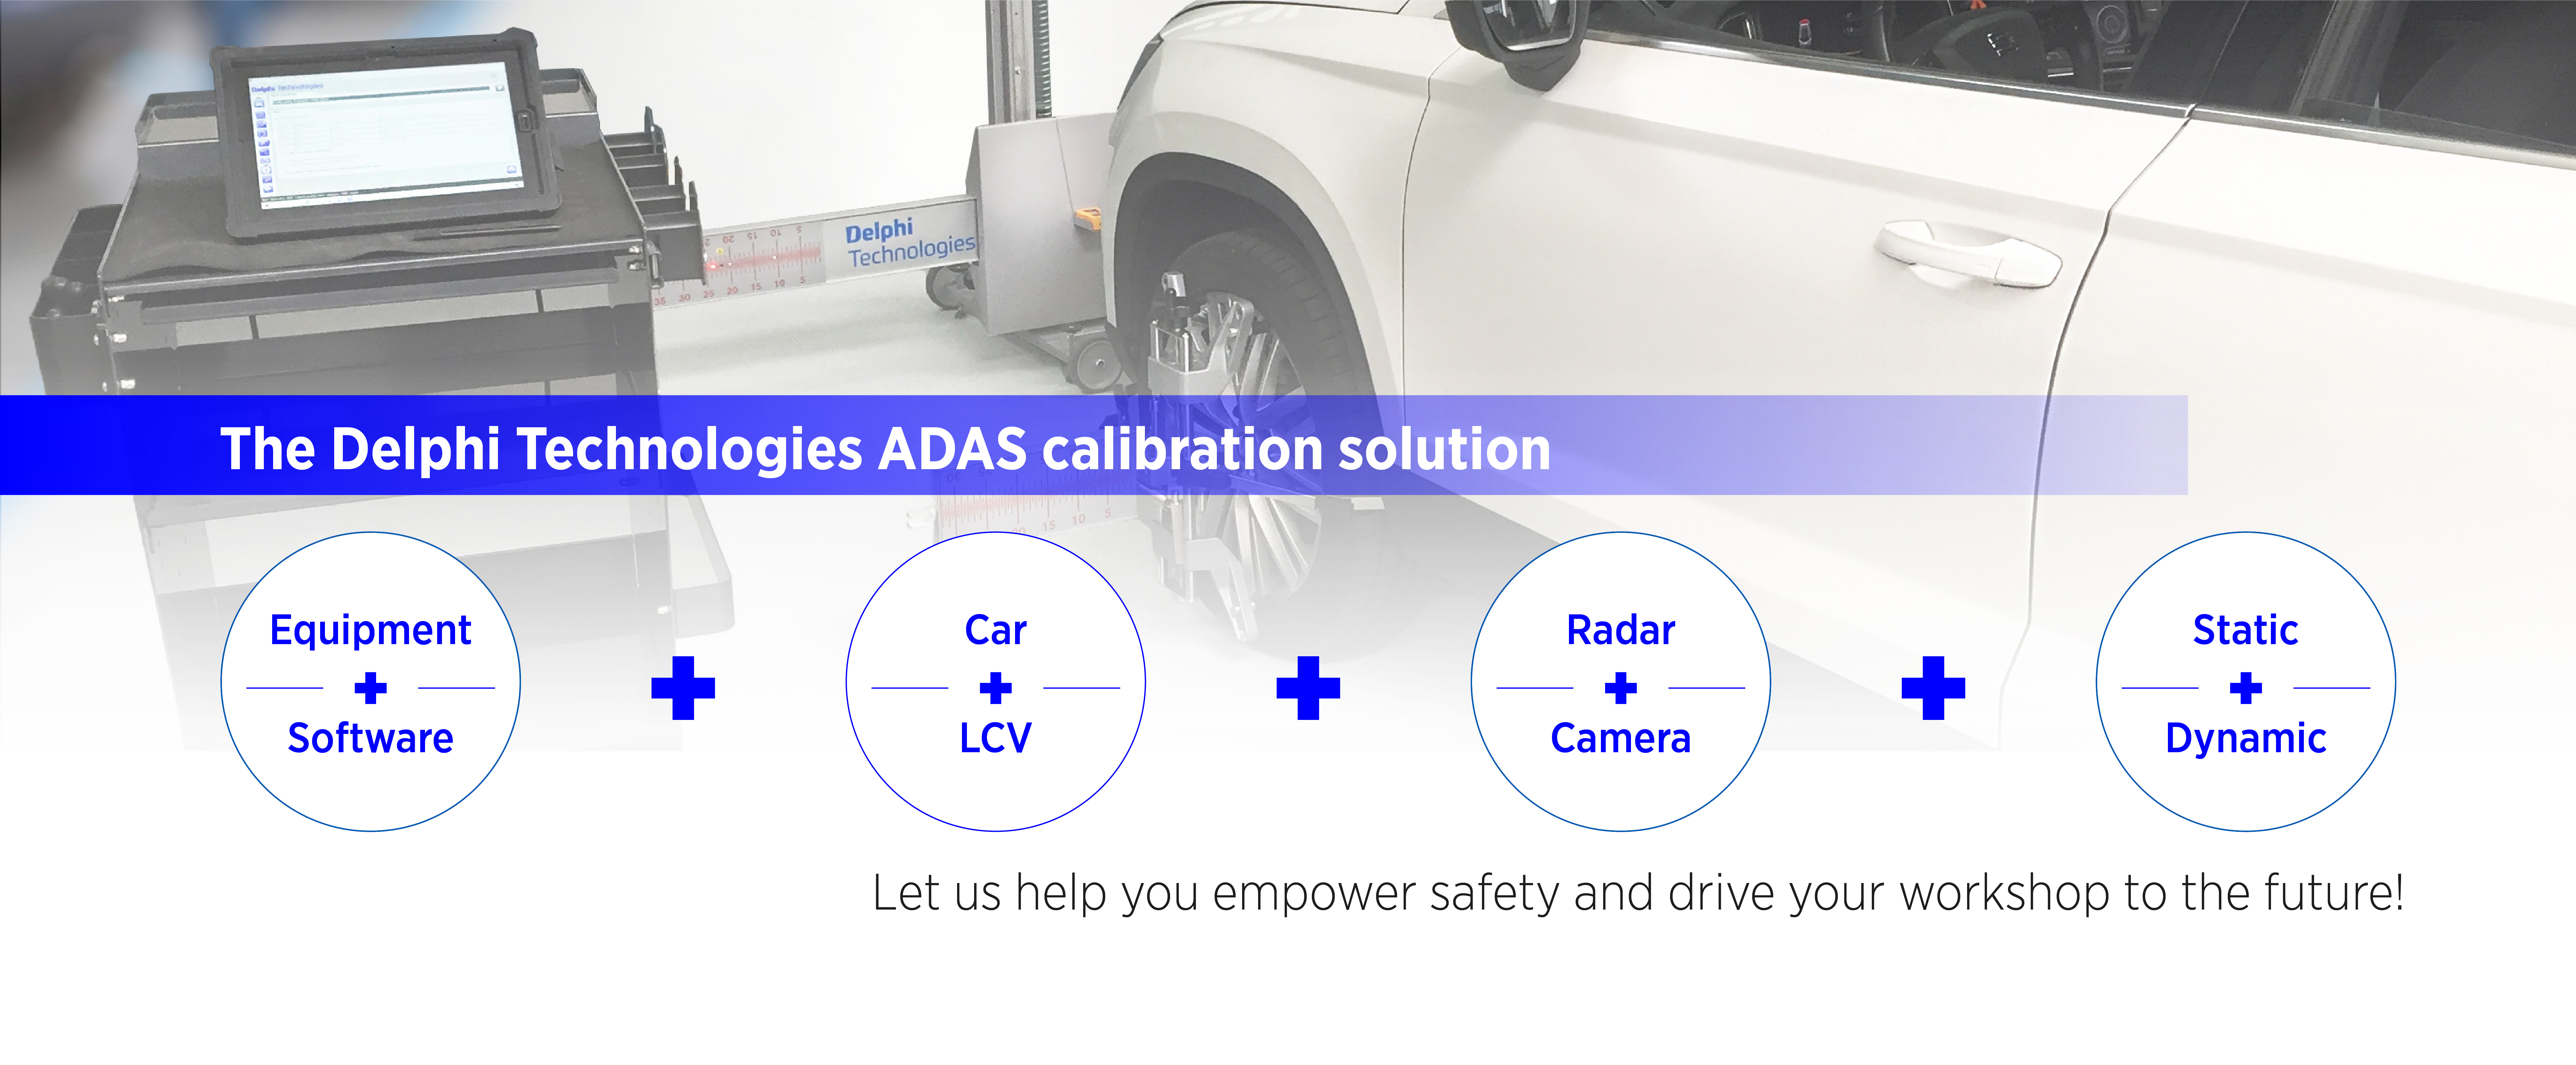 Delphi Technologies offers a comprehensive ADAS calibration solution with equipment and software for car and LCV, including radar and camera, static and dynamic